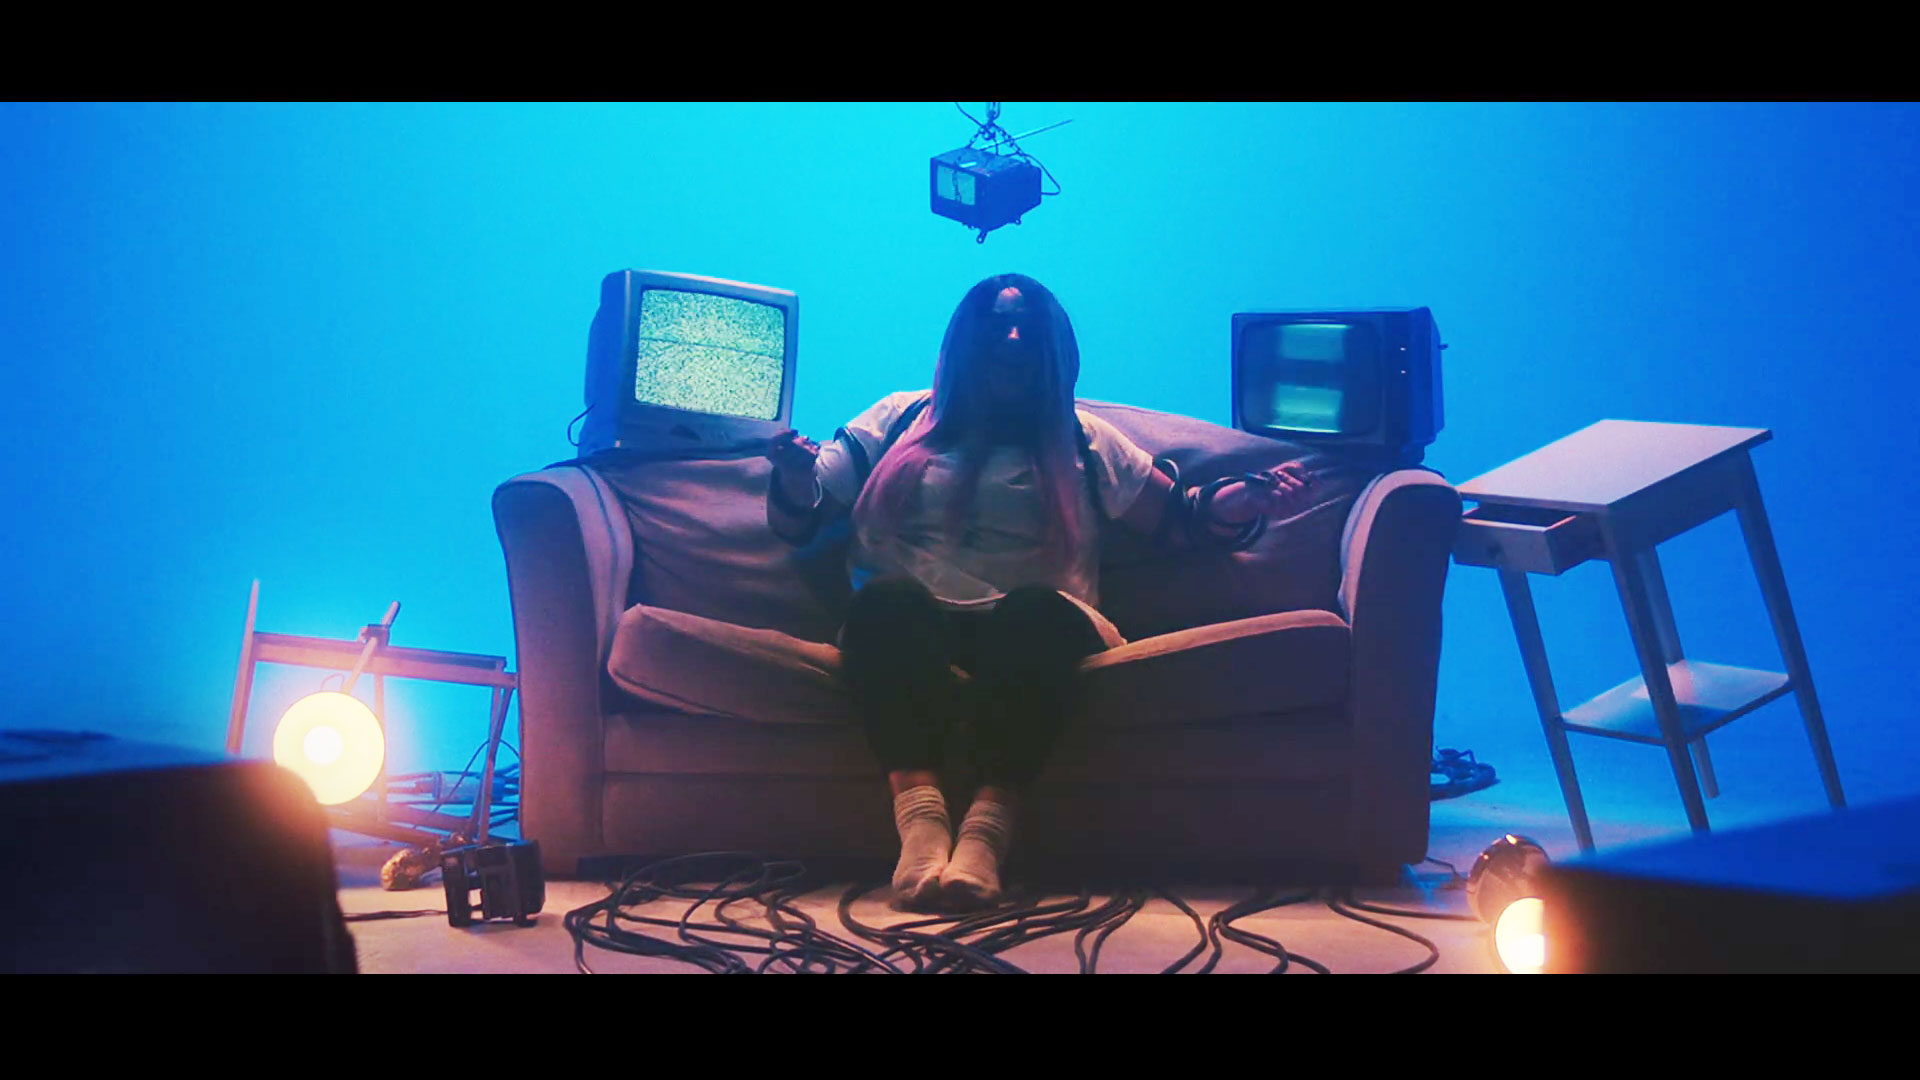 When You're Sober - Georgia Meek - video still 3